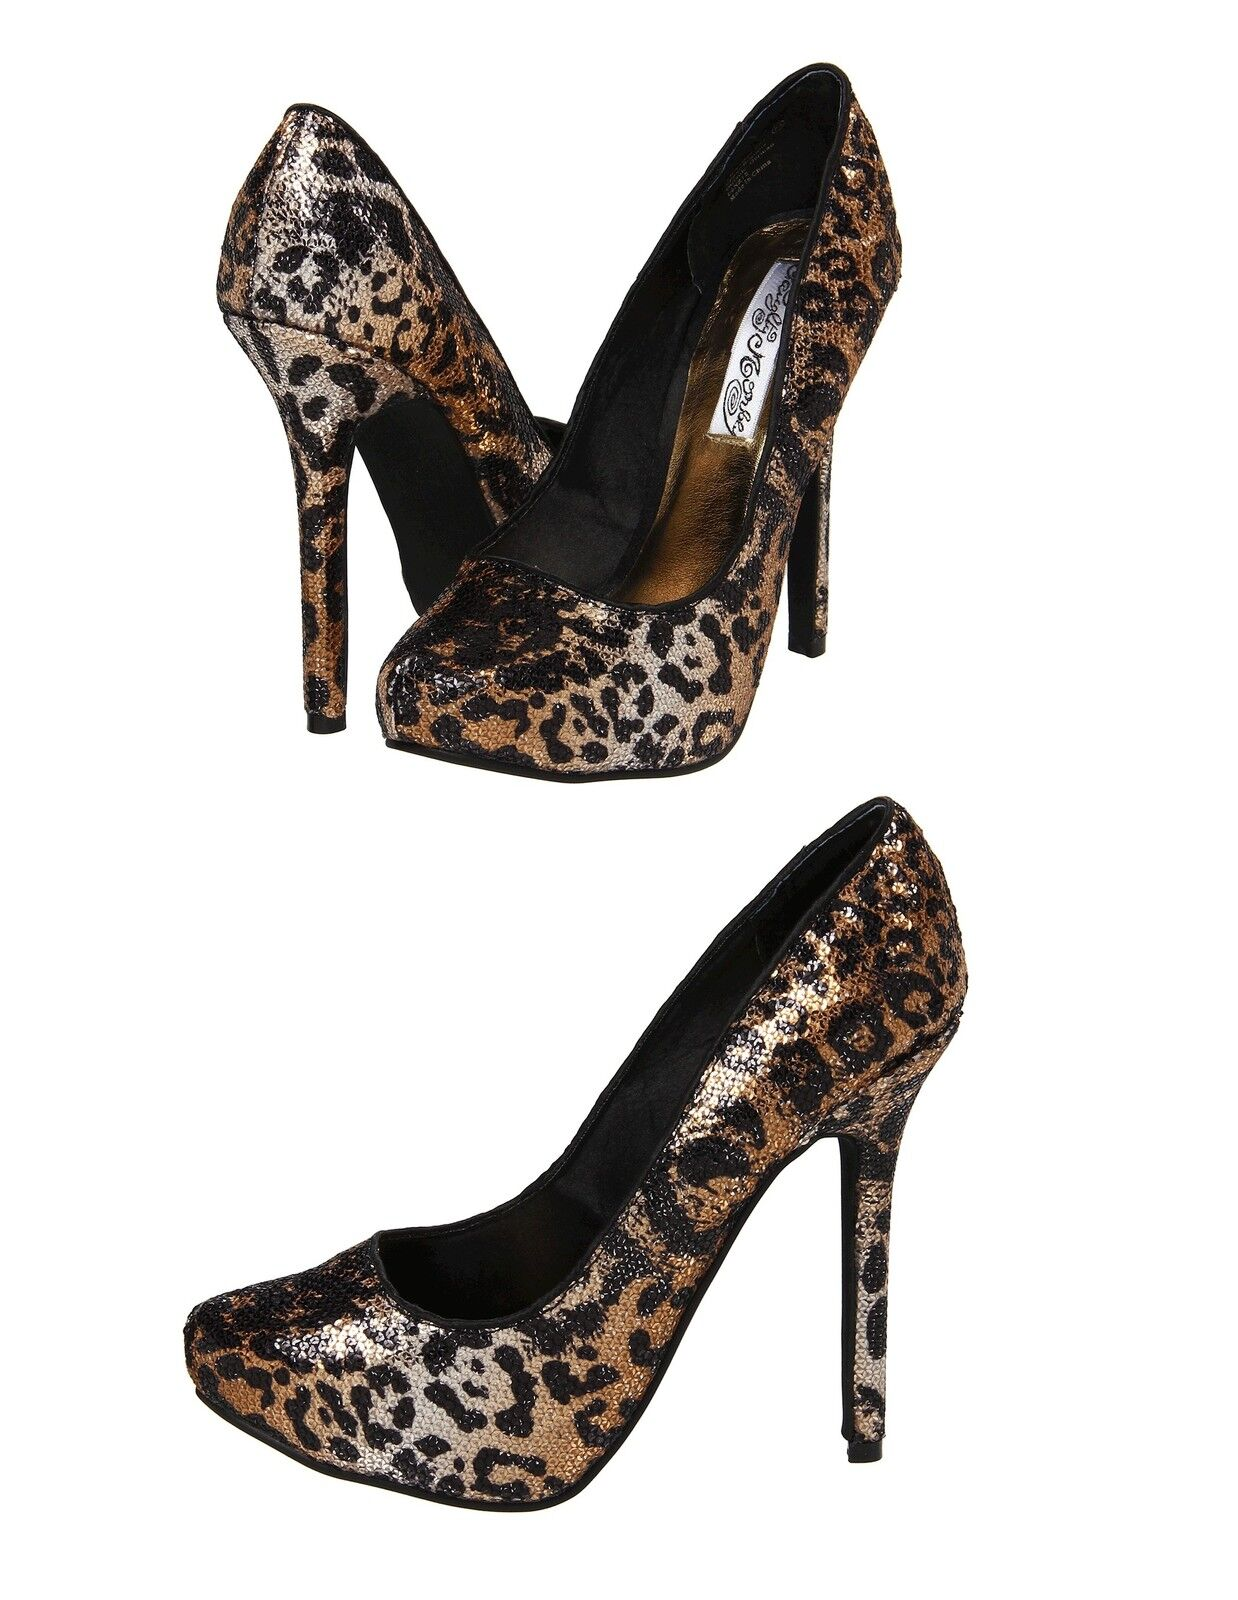 NAUGHTY MONKEY Pumps Leopard Sequins Glitter Stilettos Platform Pumps MONKEY High Heels Shoes f0ec3c